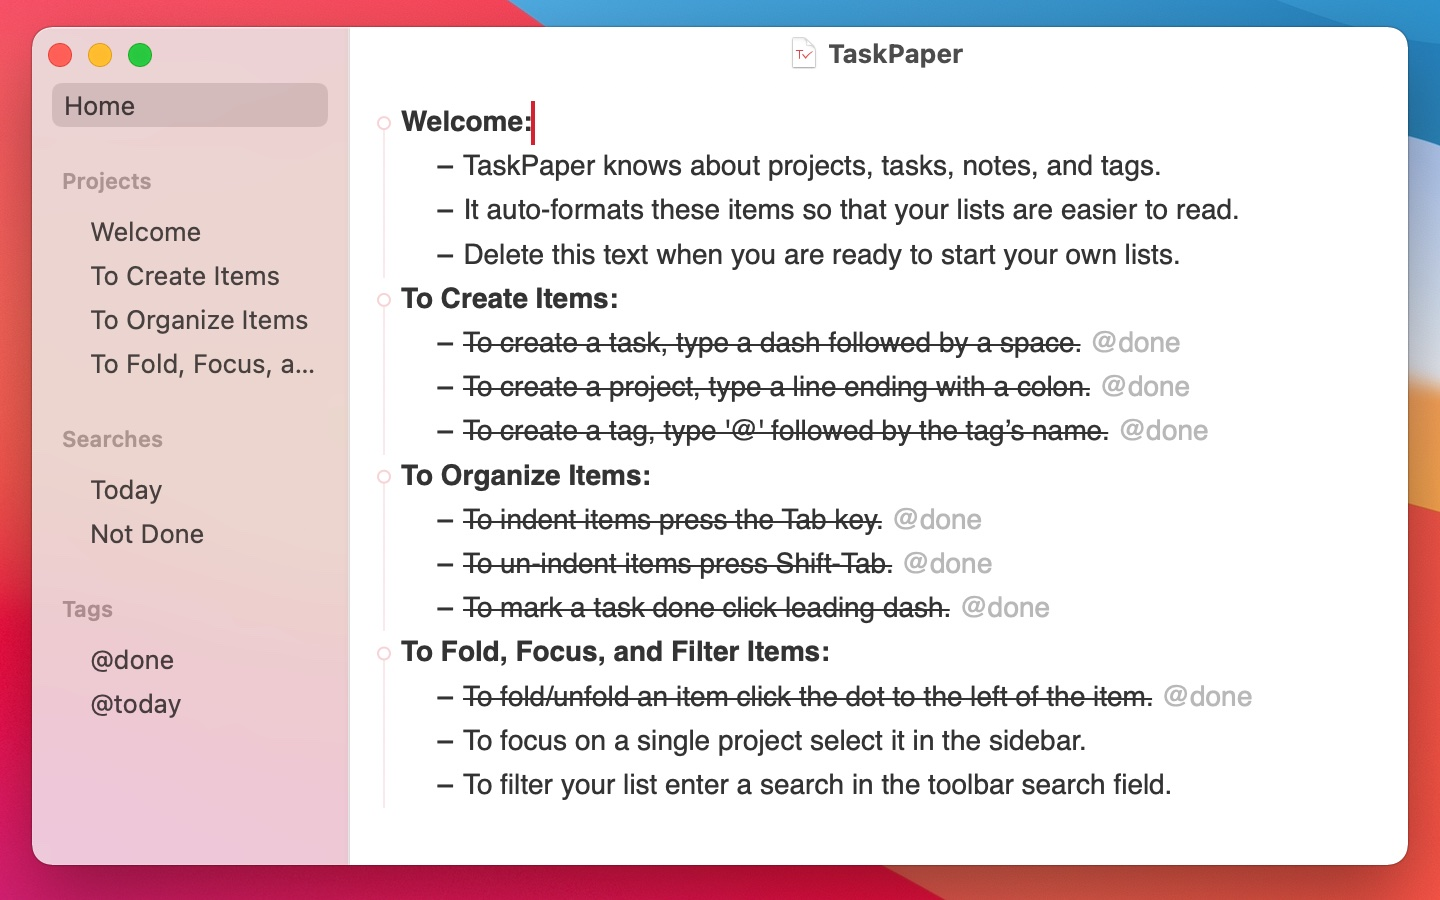 TaskPaper screenshot